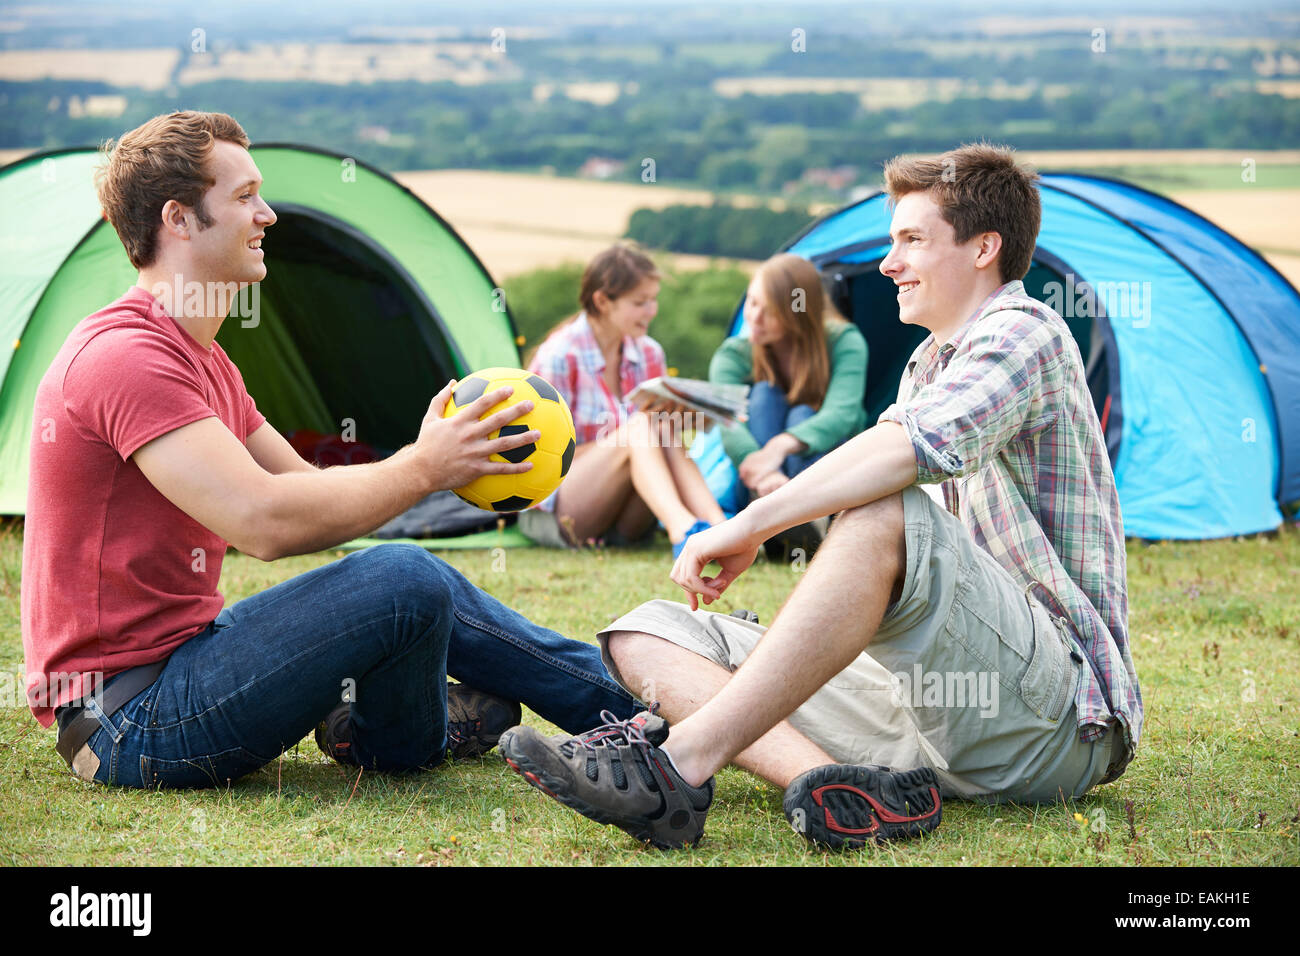 Group Of Young Friends Camping In the Countryside - Stock Image